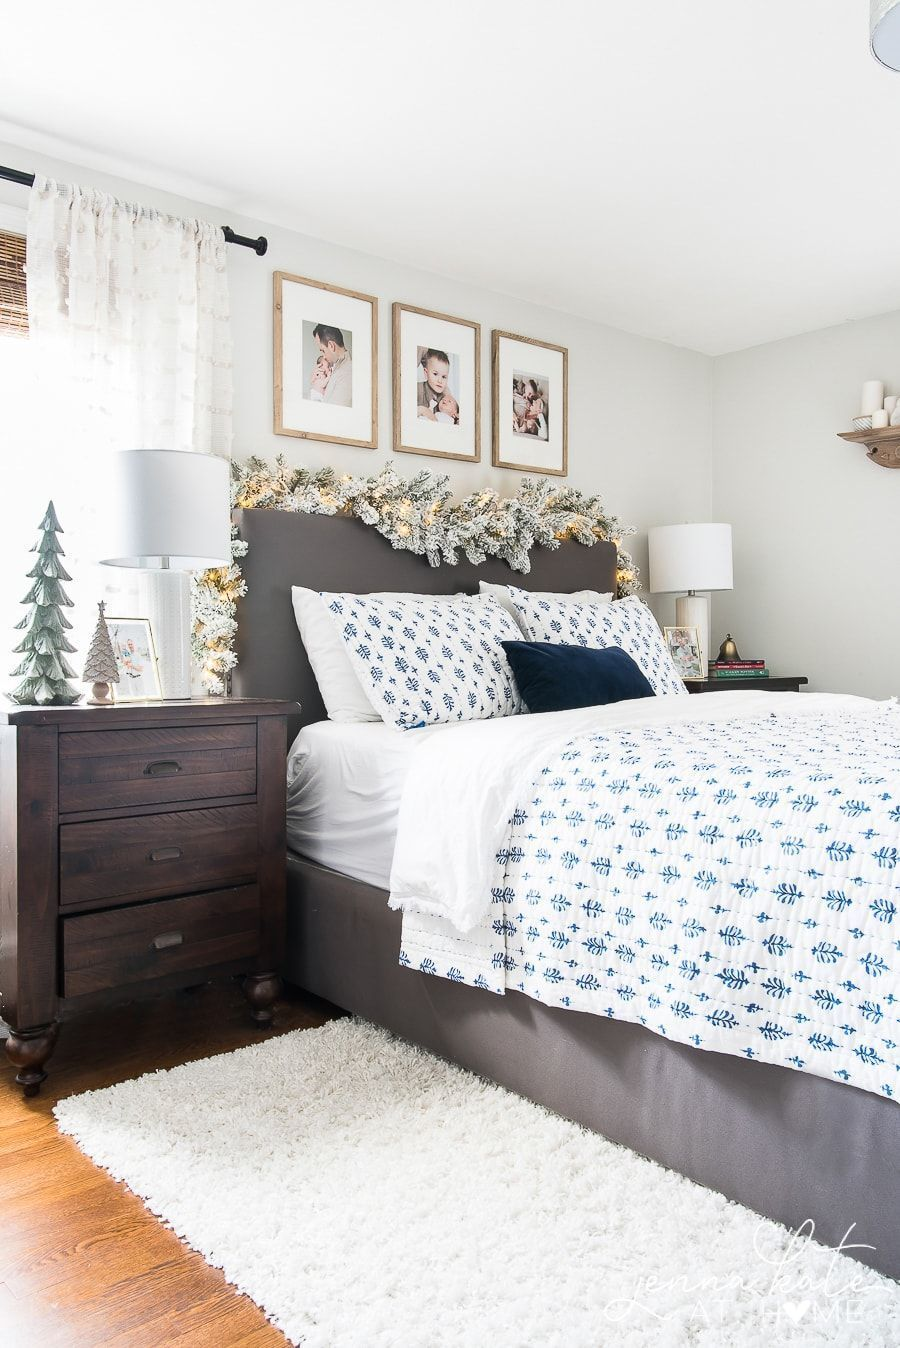 Bedroom Decor Ideas 2020 Bedroom Wall Decor Kmart Bedroom Decor Amazon Ideas In 2020 Diy Home Decor Bedroom Home Decor Elegant Christmas Decor